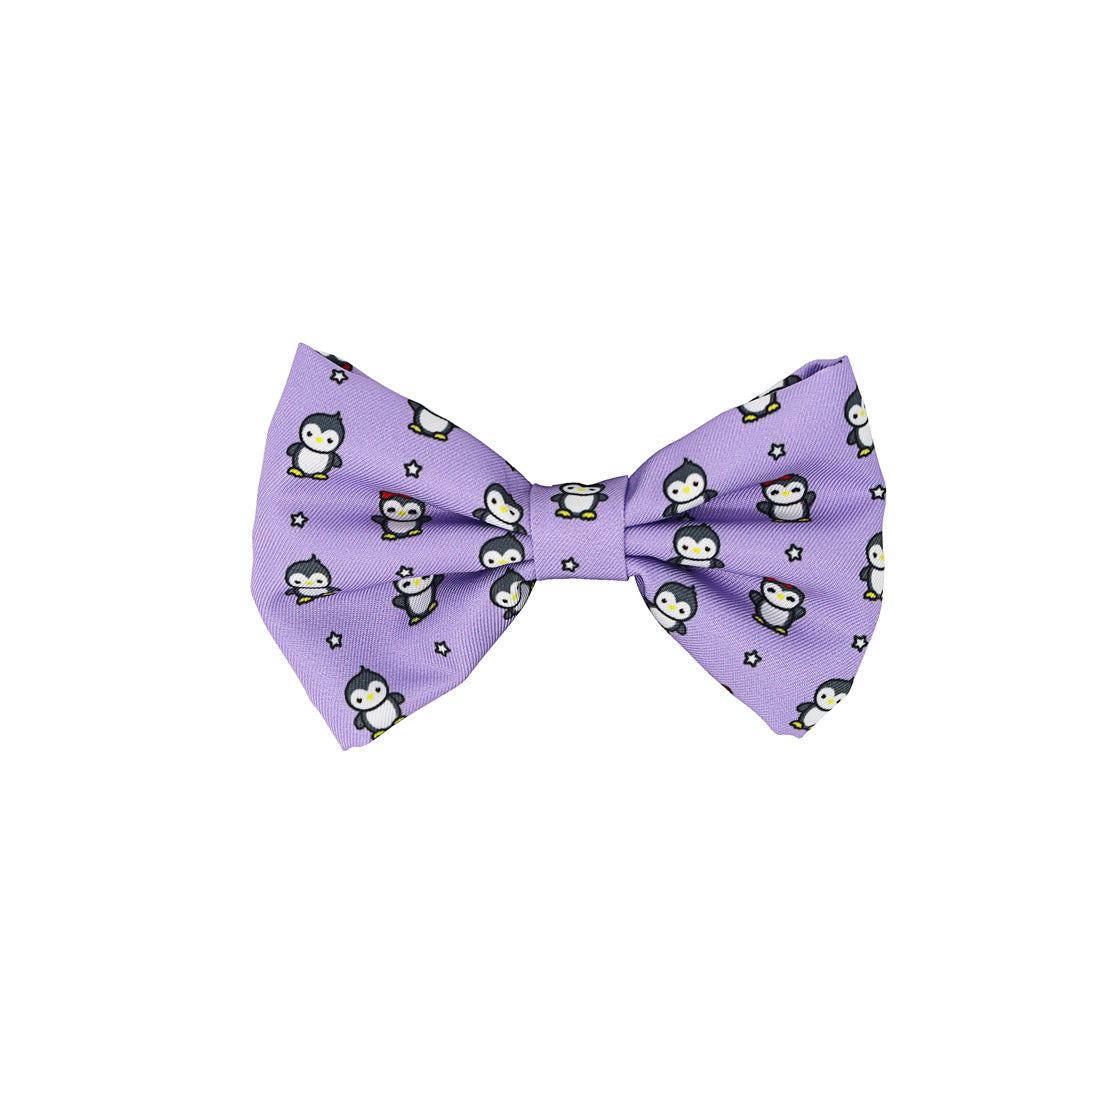 Dog Bow Tie - Frosty Feet - Blue Paw Co.